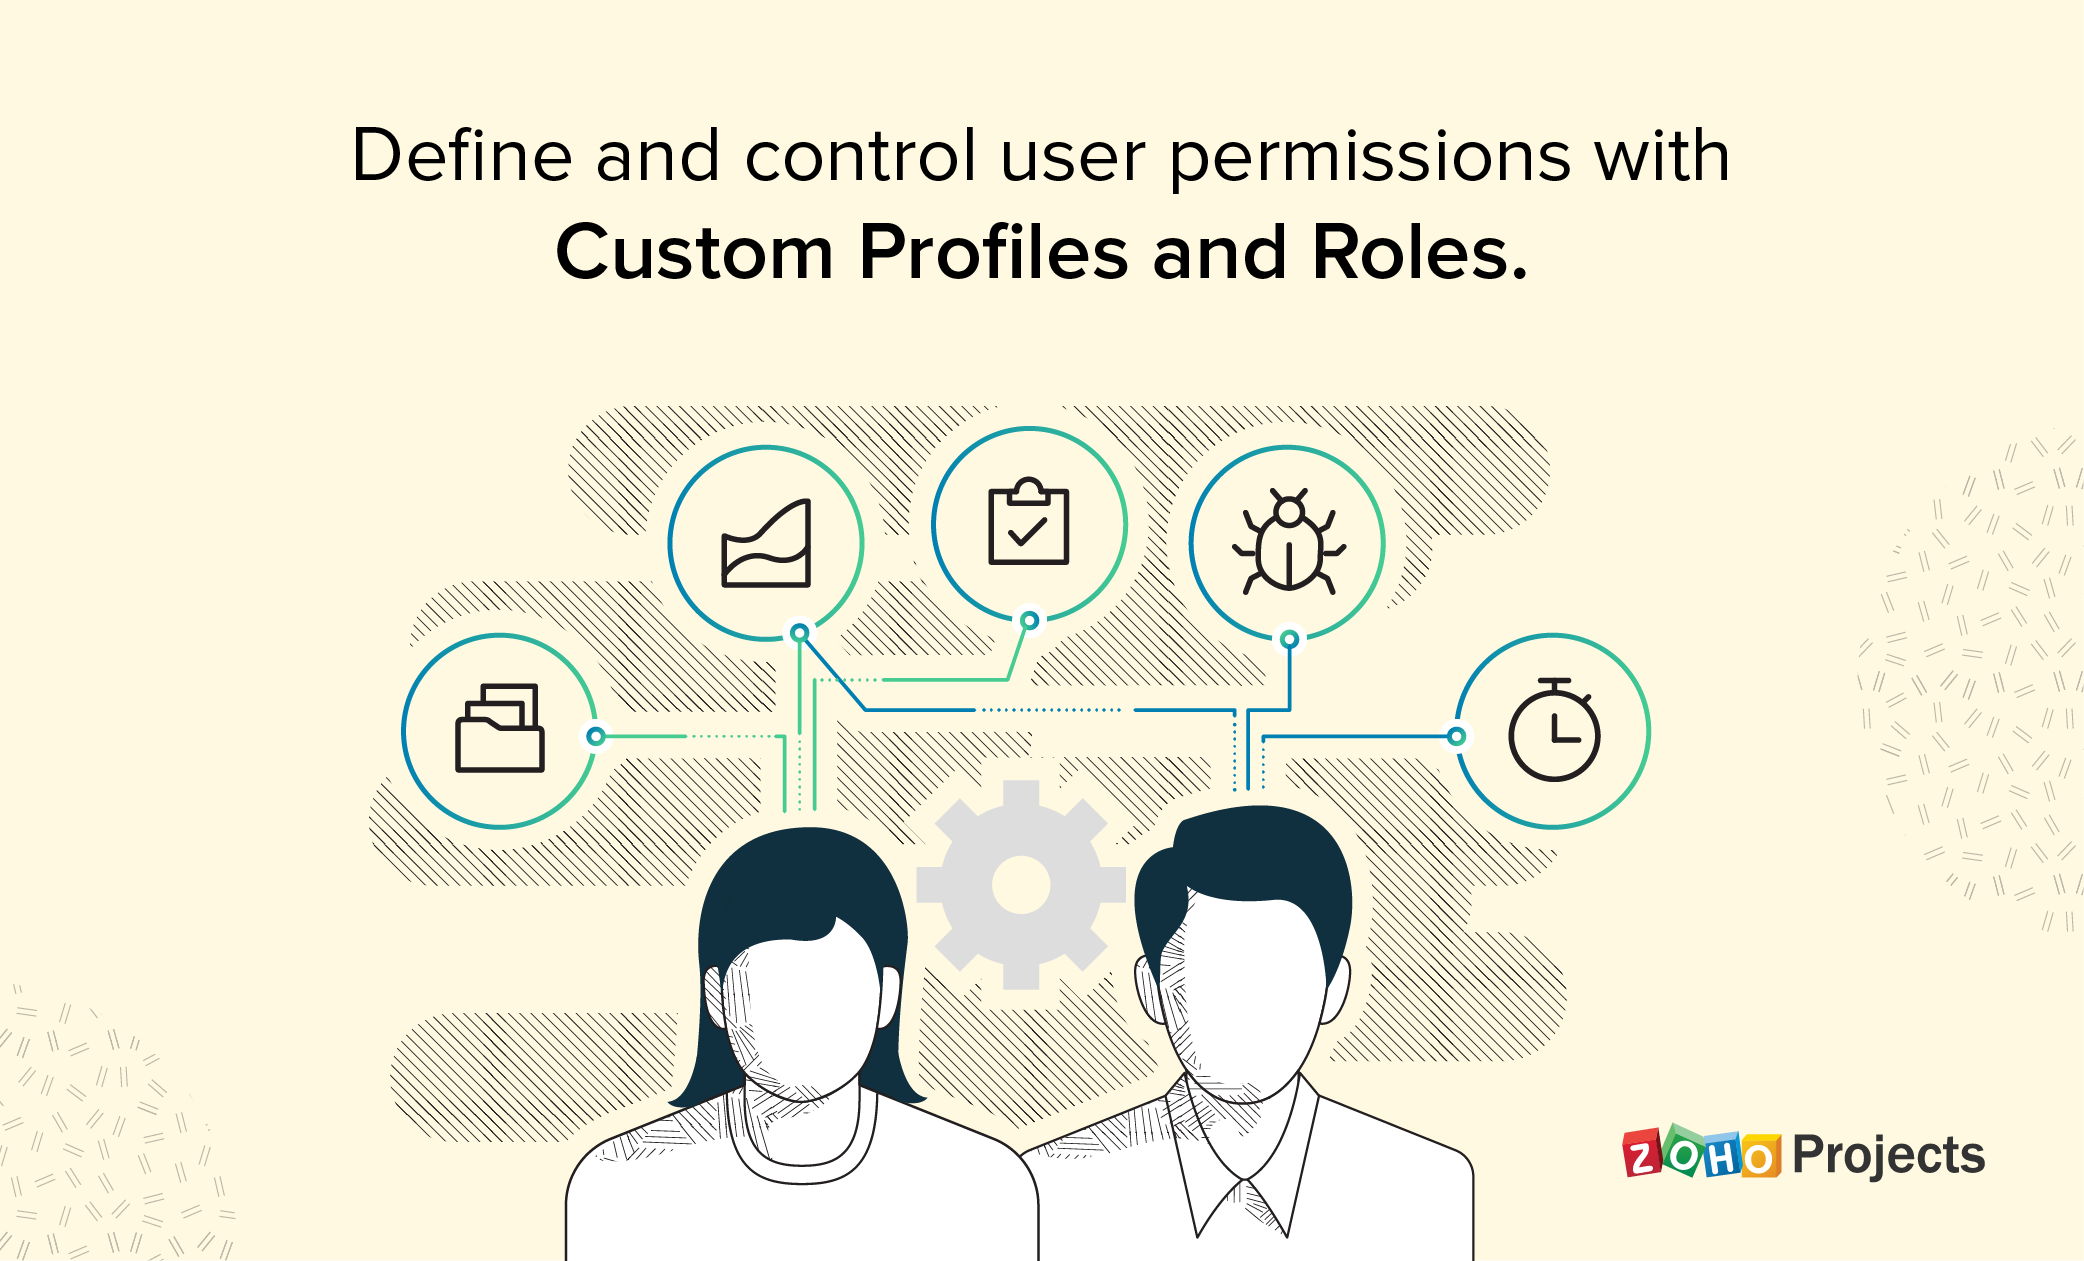 Roles, Profiles, and Permissions: Customize and Control User Privileges